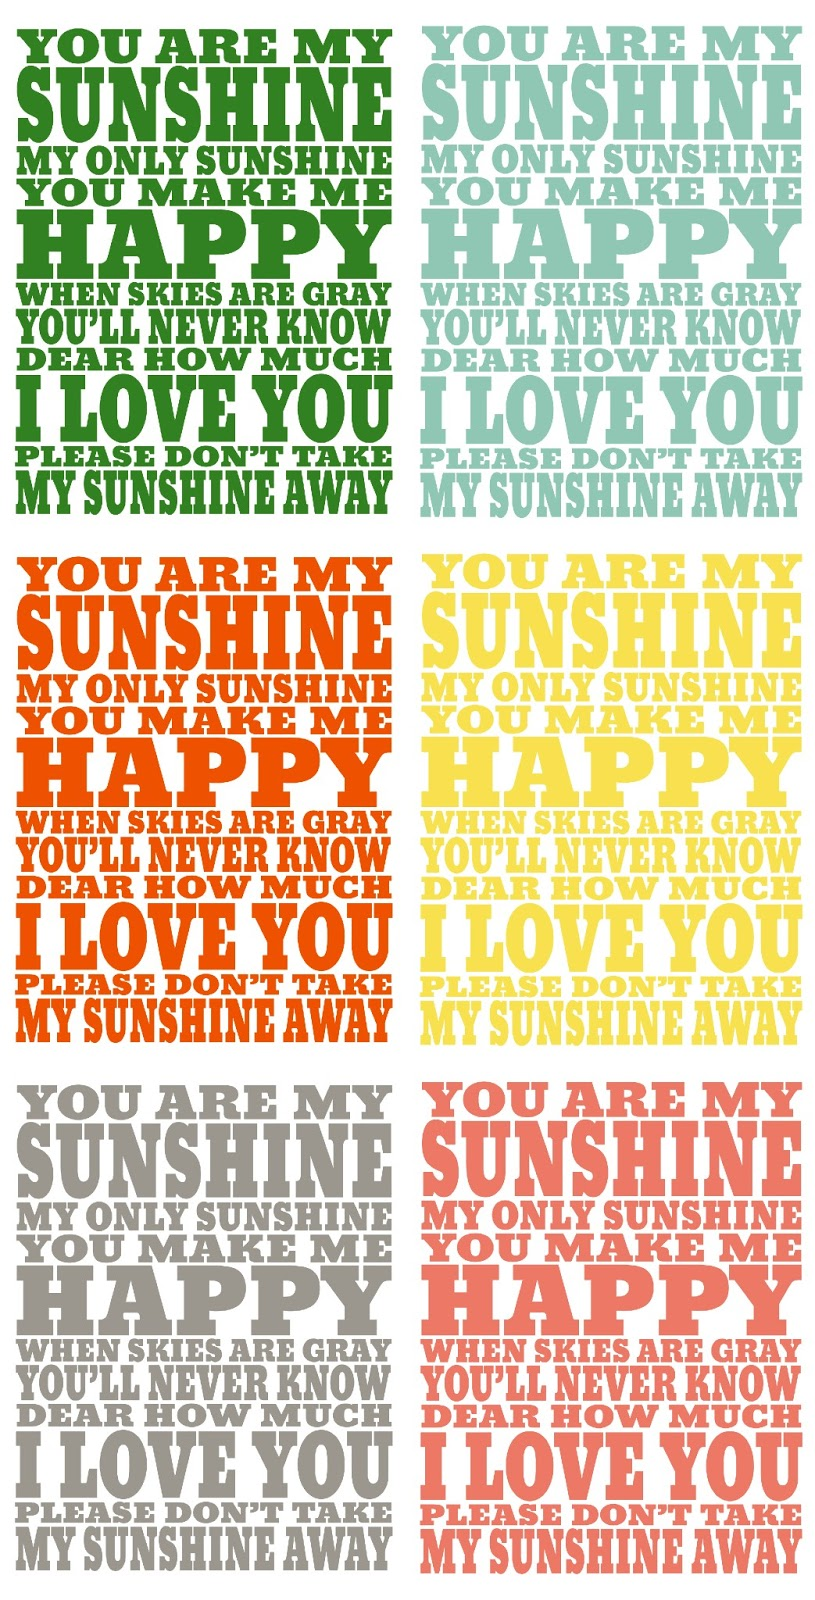 image regarding You Are My Sunshine Printable named Yourself Are My Sun Print - 1825